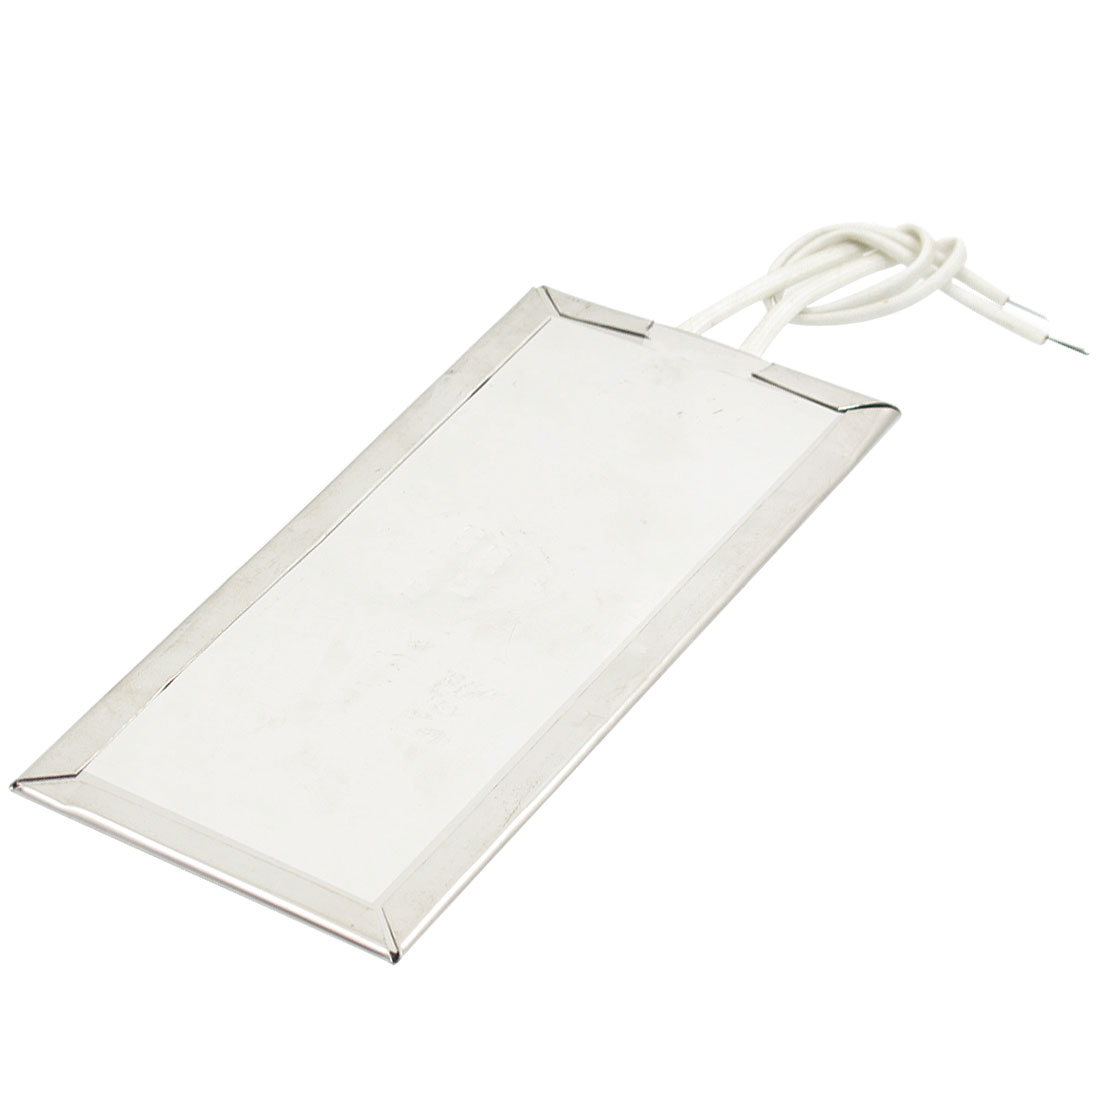 Nylon Coated Wires Stainless Steel Heating Board 220V 480W 200mm x 80mm